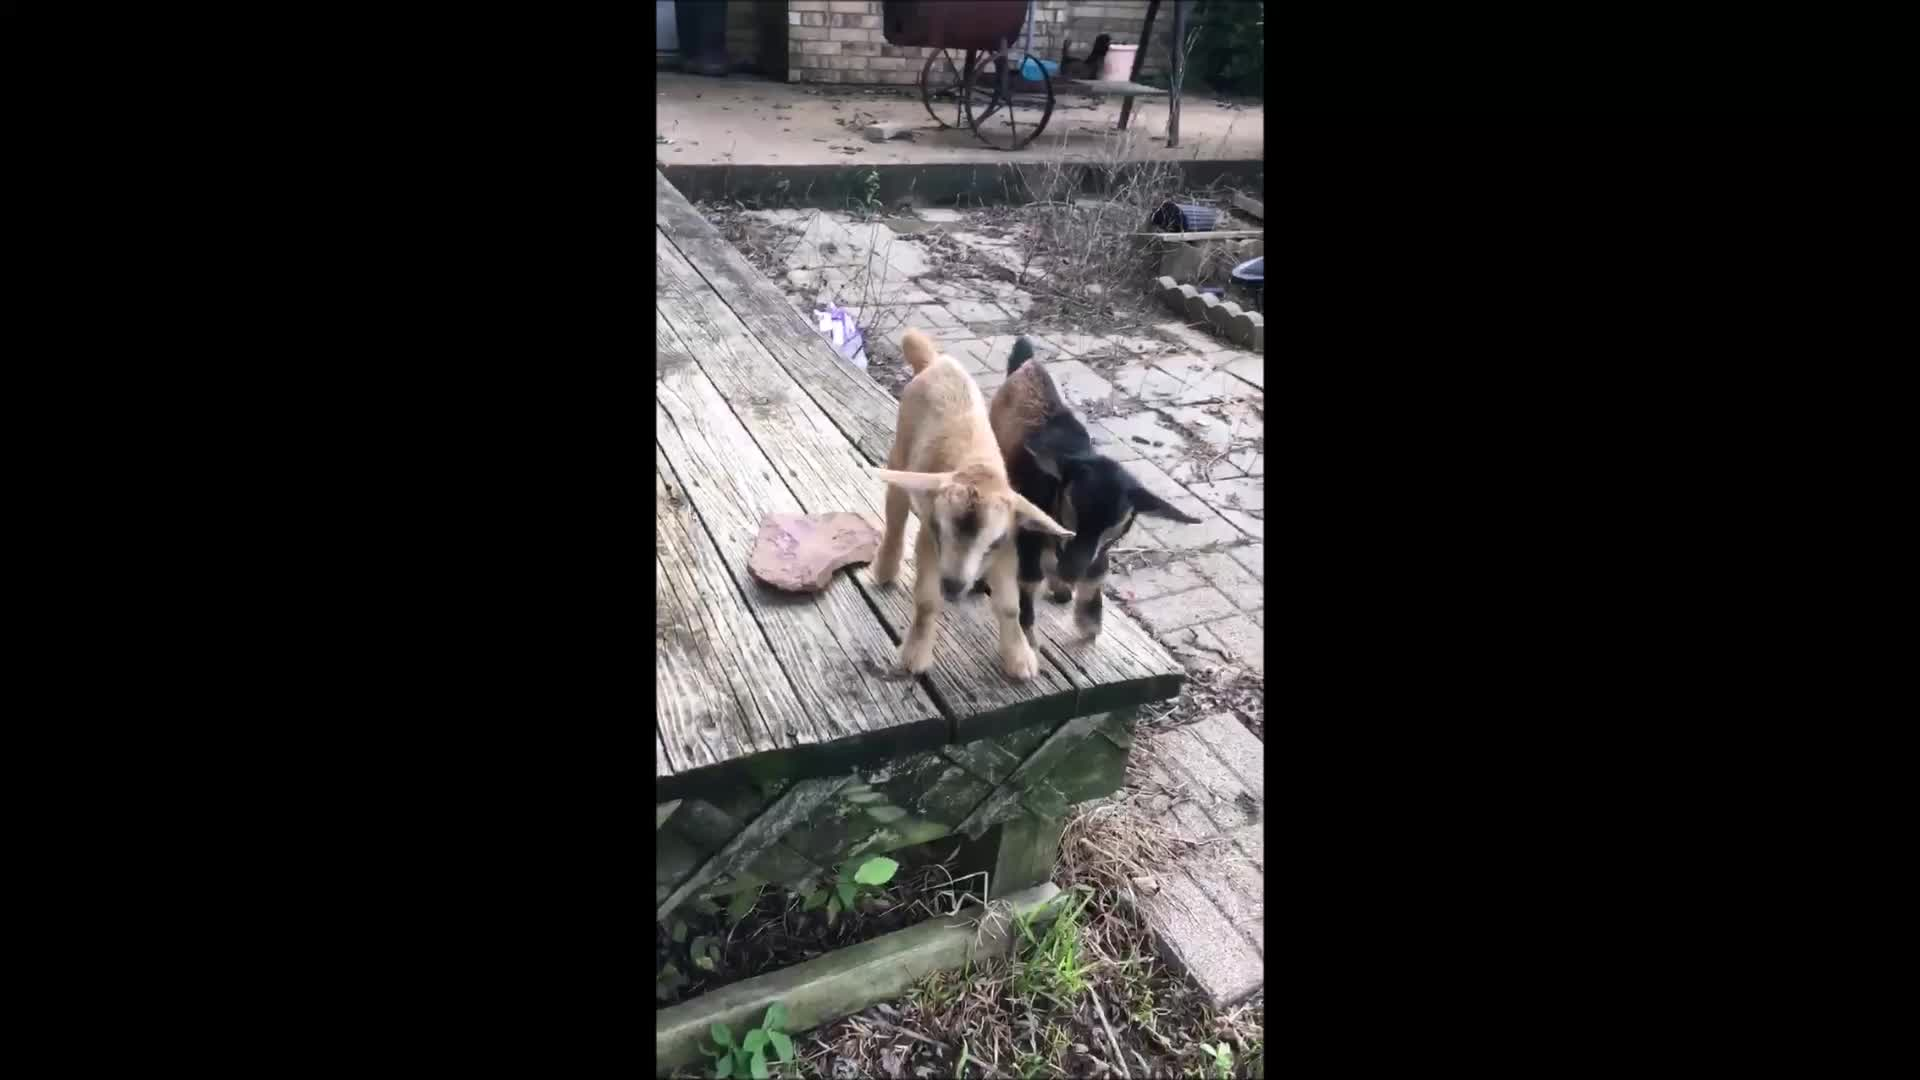 aww, baby goats, babygoats, cute, eyebleach, goatparkour, knsfarm, tippytaps, Baby Goat Tippy Taps (Source: McMullen Farm) GIFs